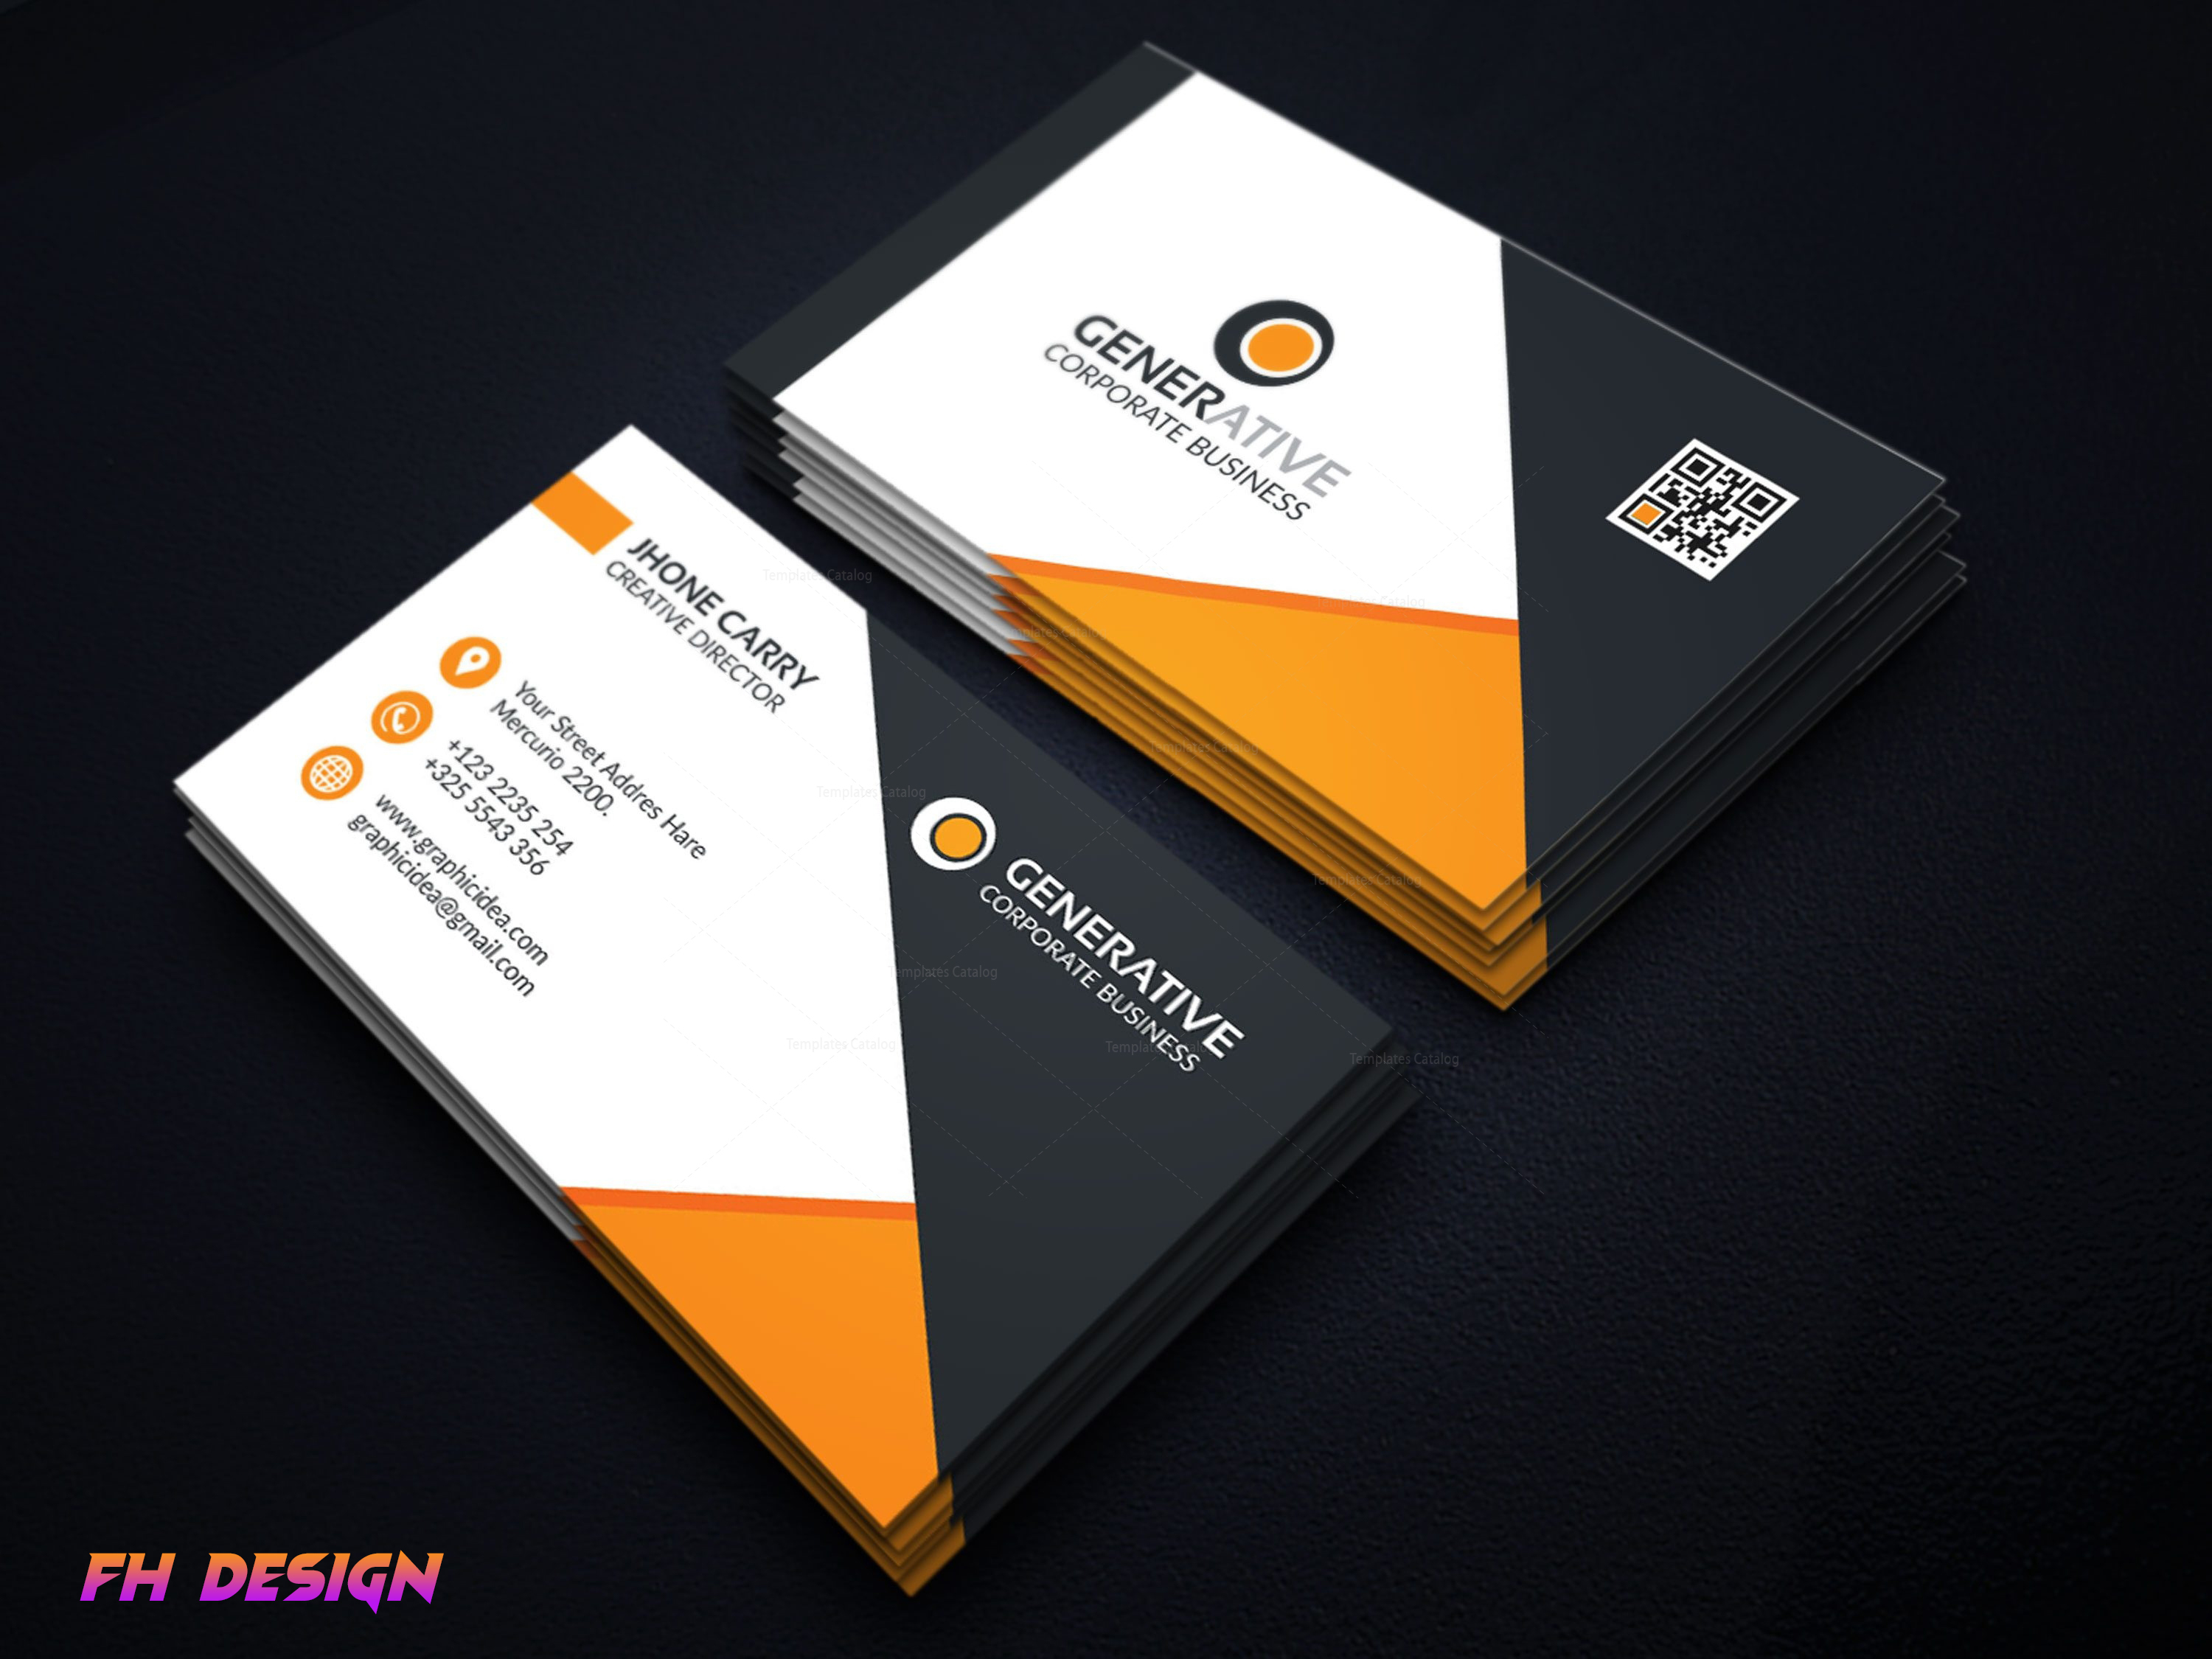 I will provide professional, creative and unique business card design